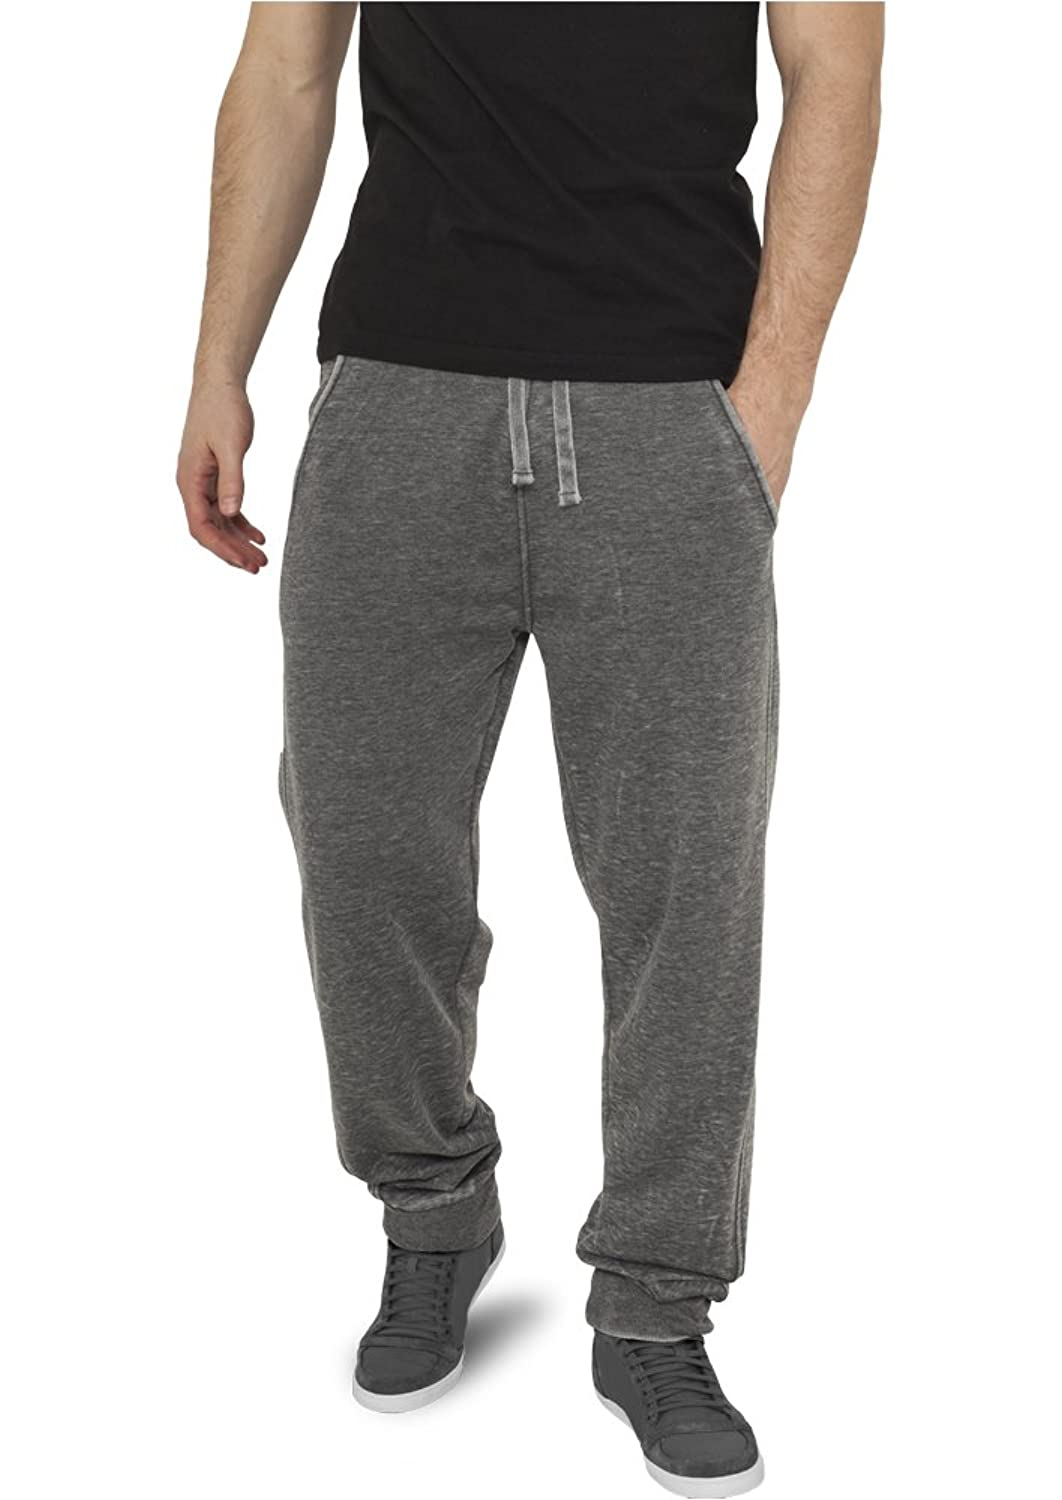 URBAN CLASSICS Burnout Sweatpants, dark grey